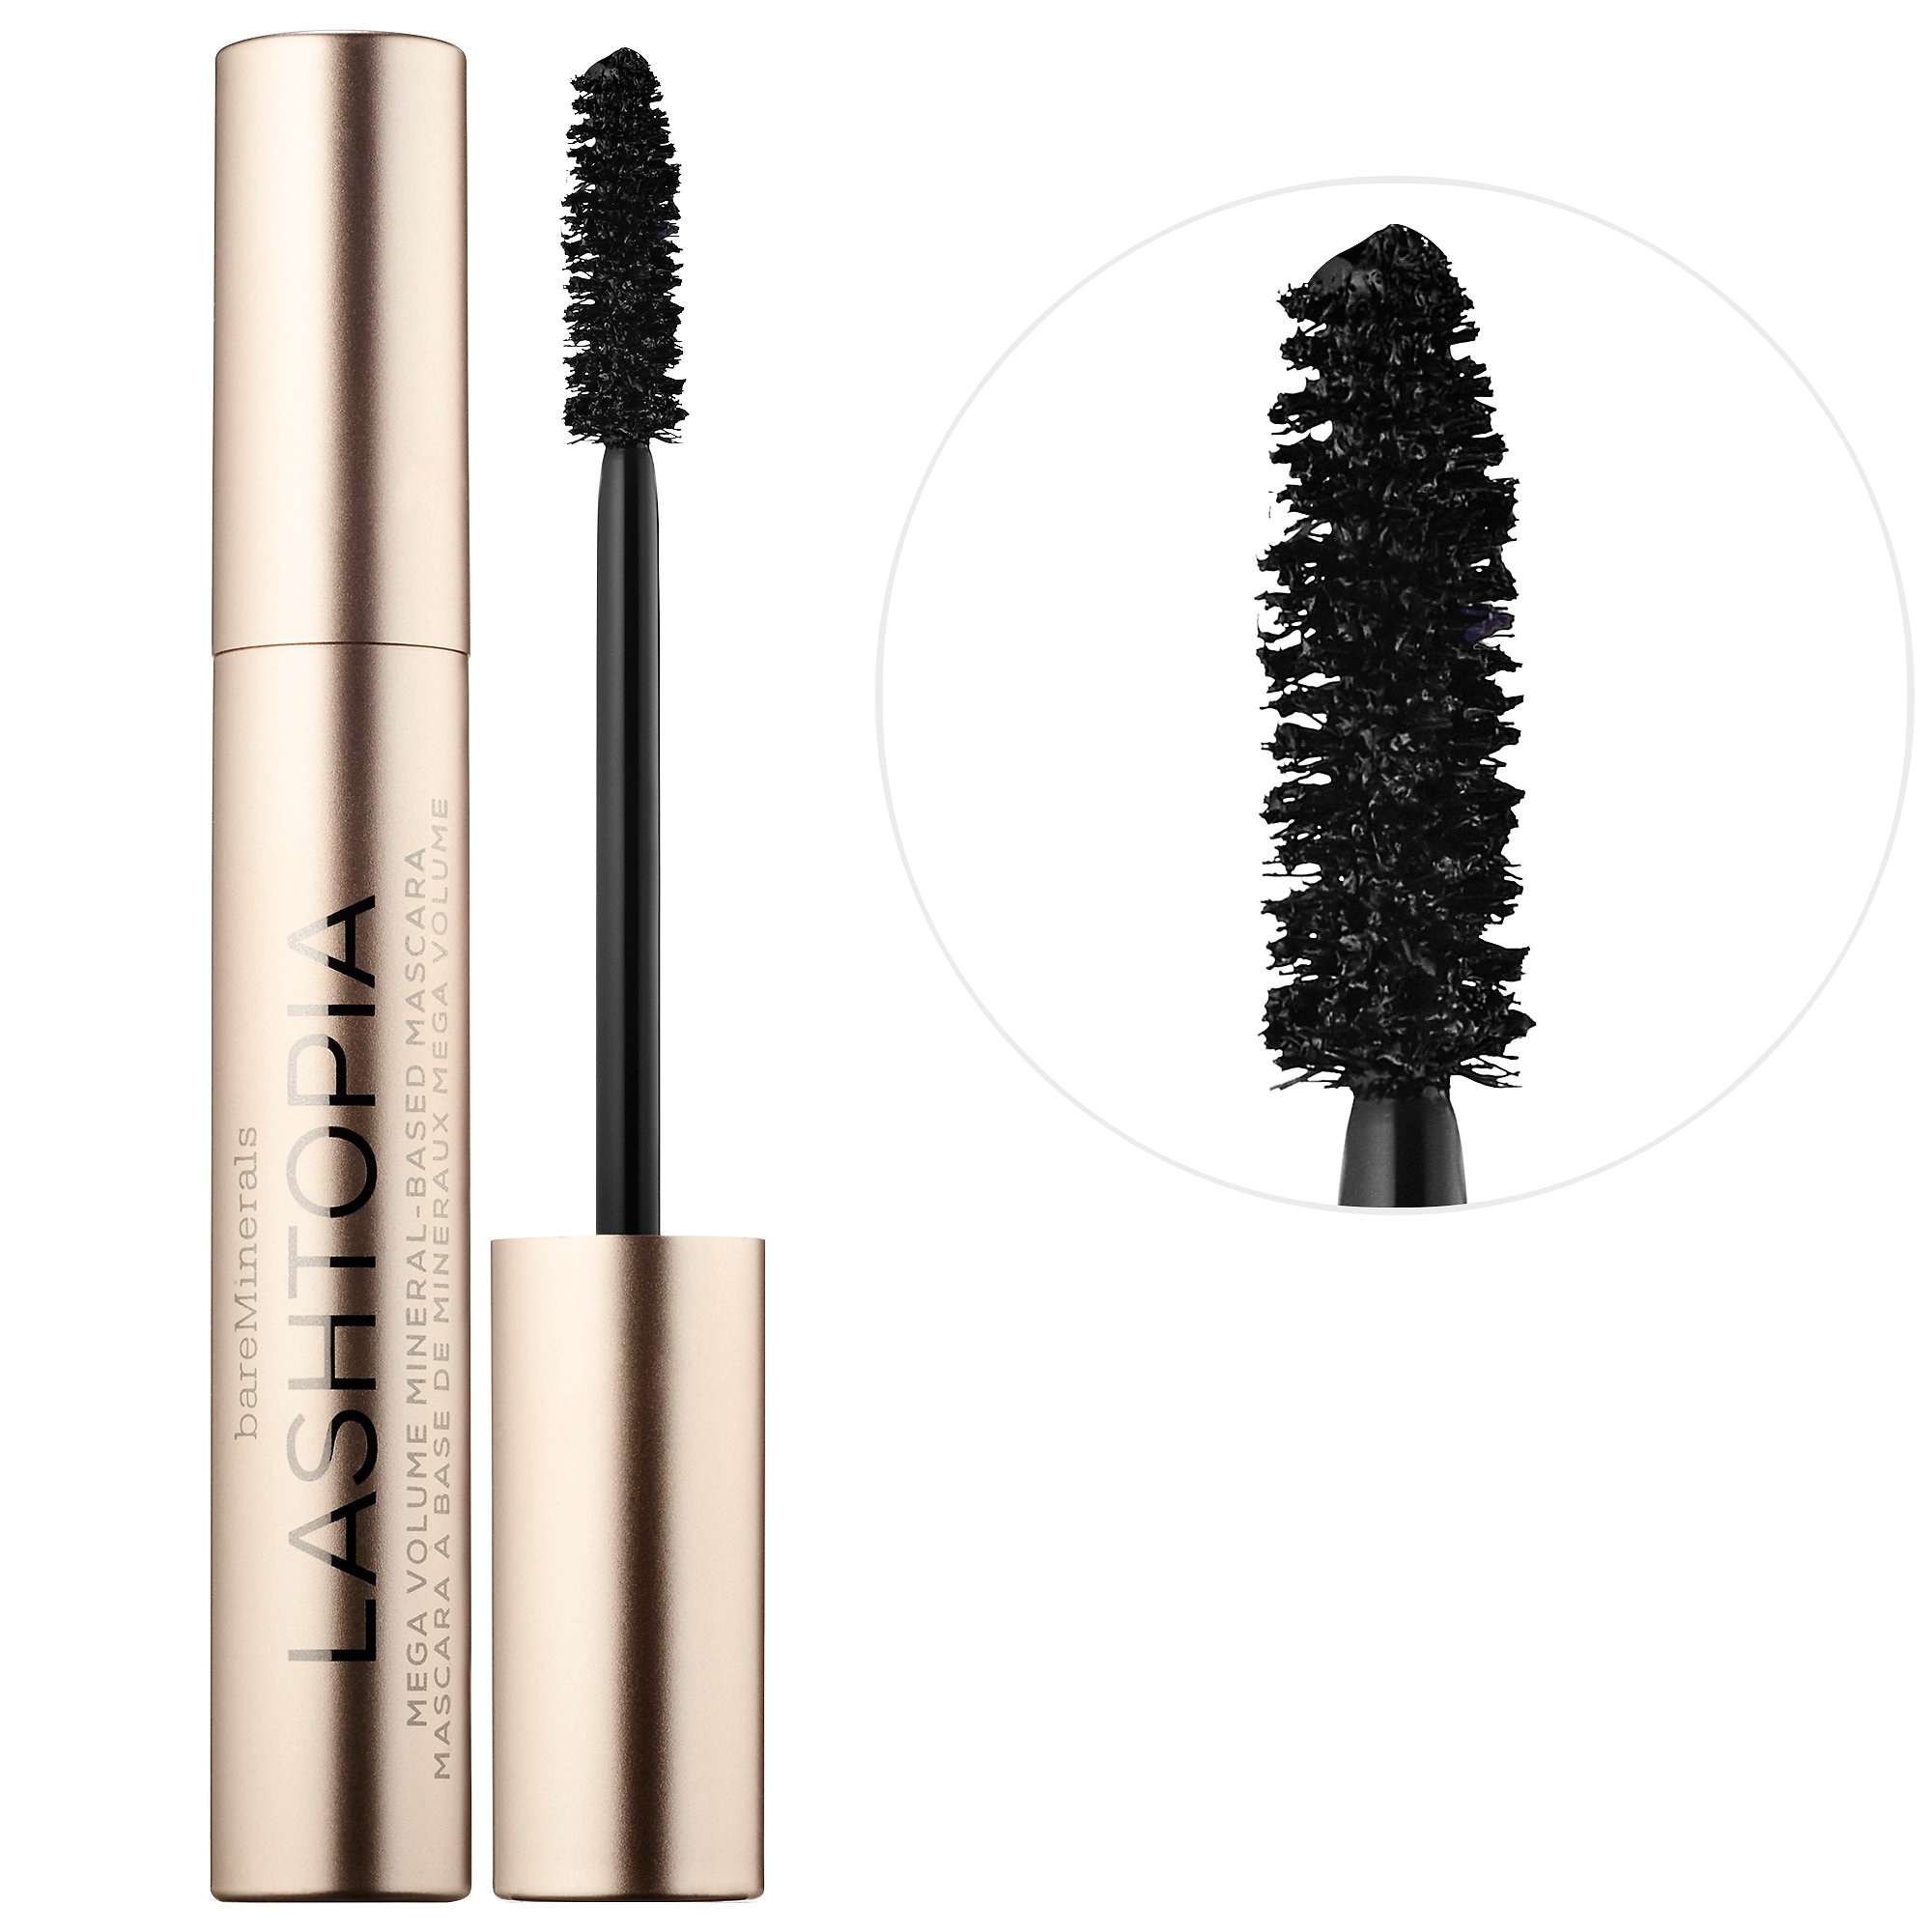 Lashtopia Volumizing Mascara